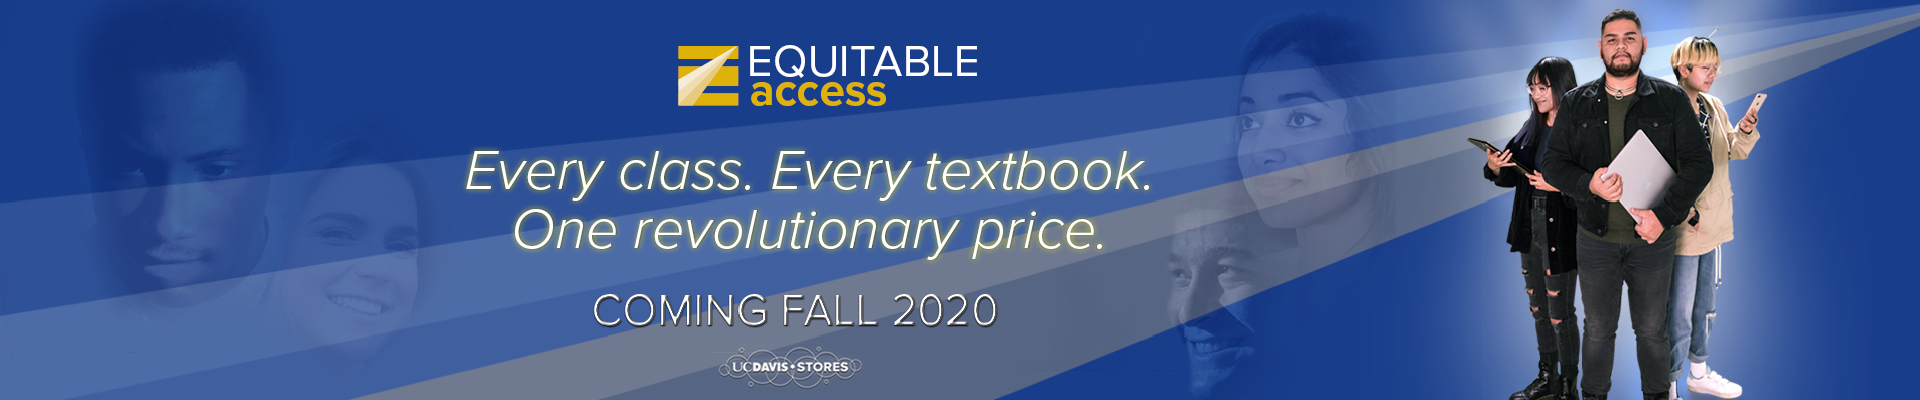 Equitable Access Banner